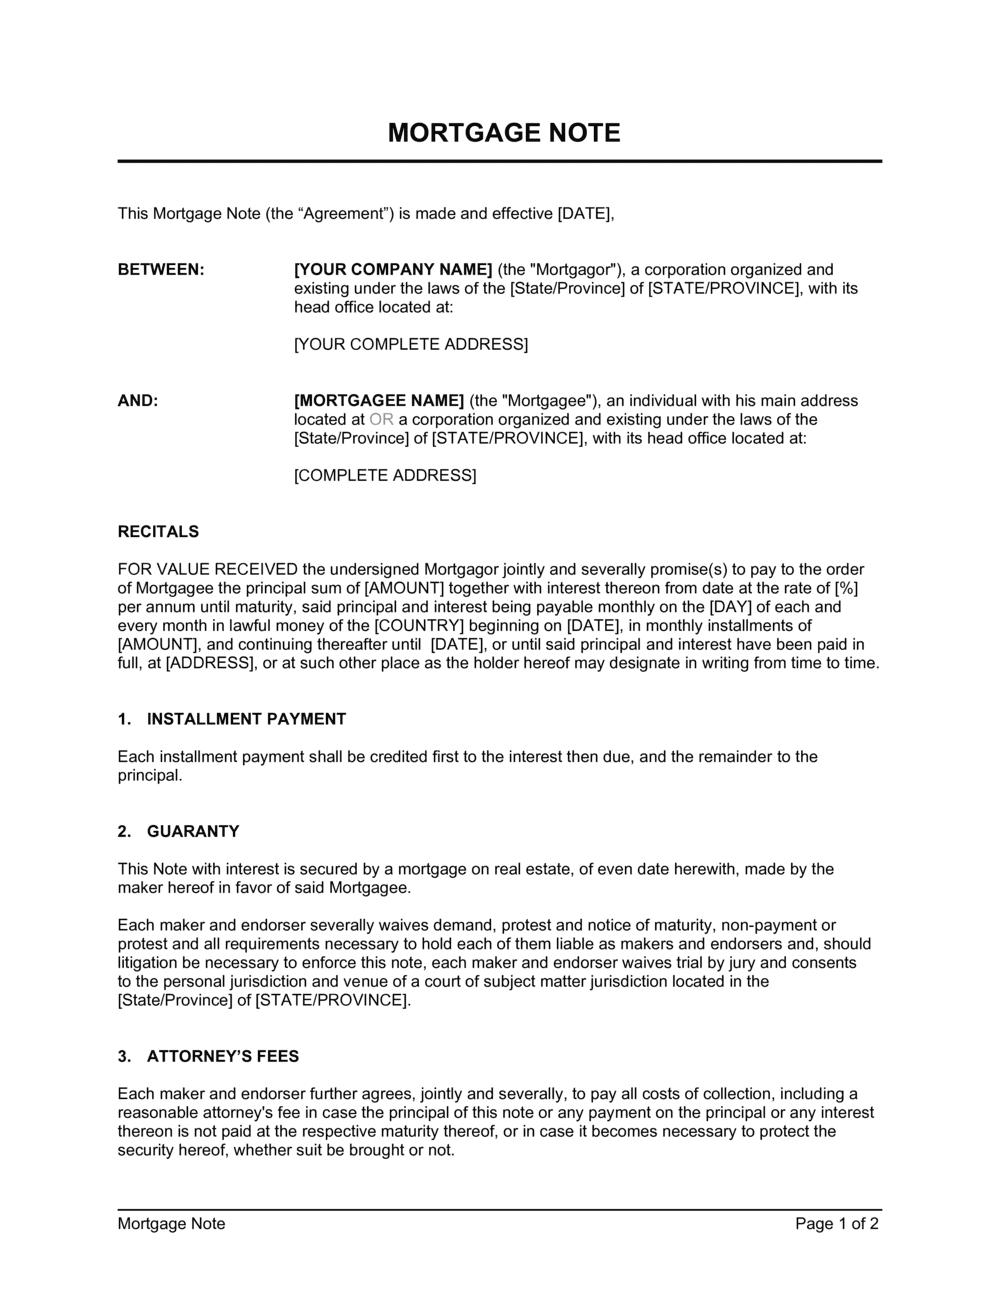 Business-in-a-Box's Mortgage Note Template